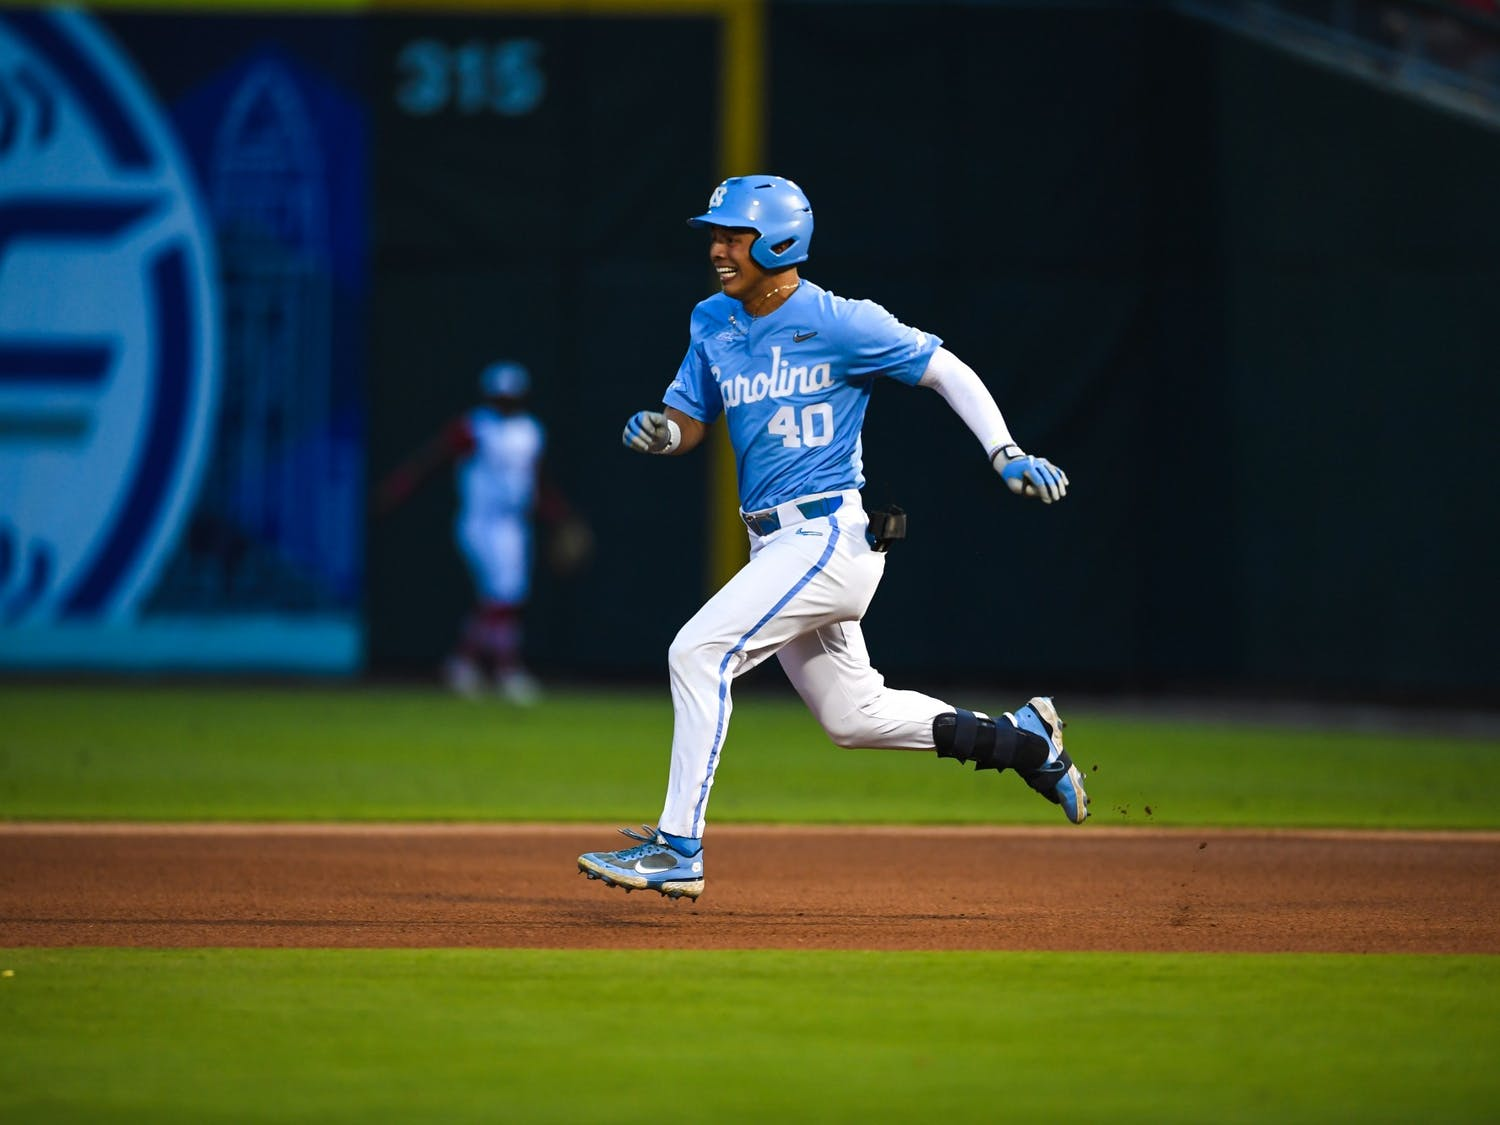 UNC redshirt sophomore outfielder Angel Zarate (40) runs to a base at the ACC tournament game against NC State on Friday May 28, 2021 in Charlotte, NC. UNC won 9-6. Photo courtesy of Maggie Boulton and Laura Wolff.